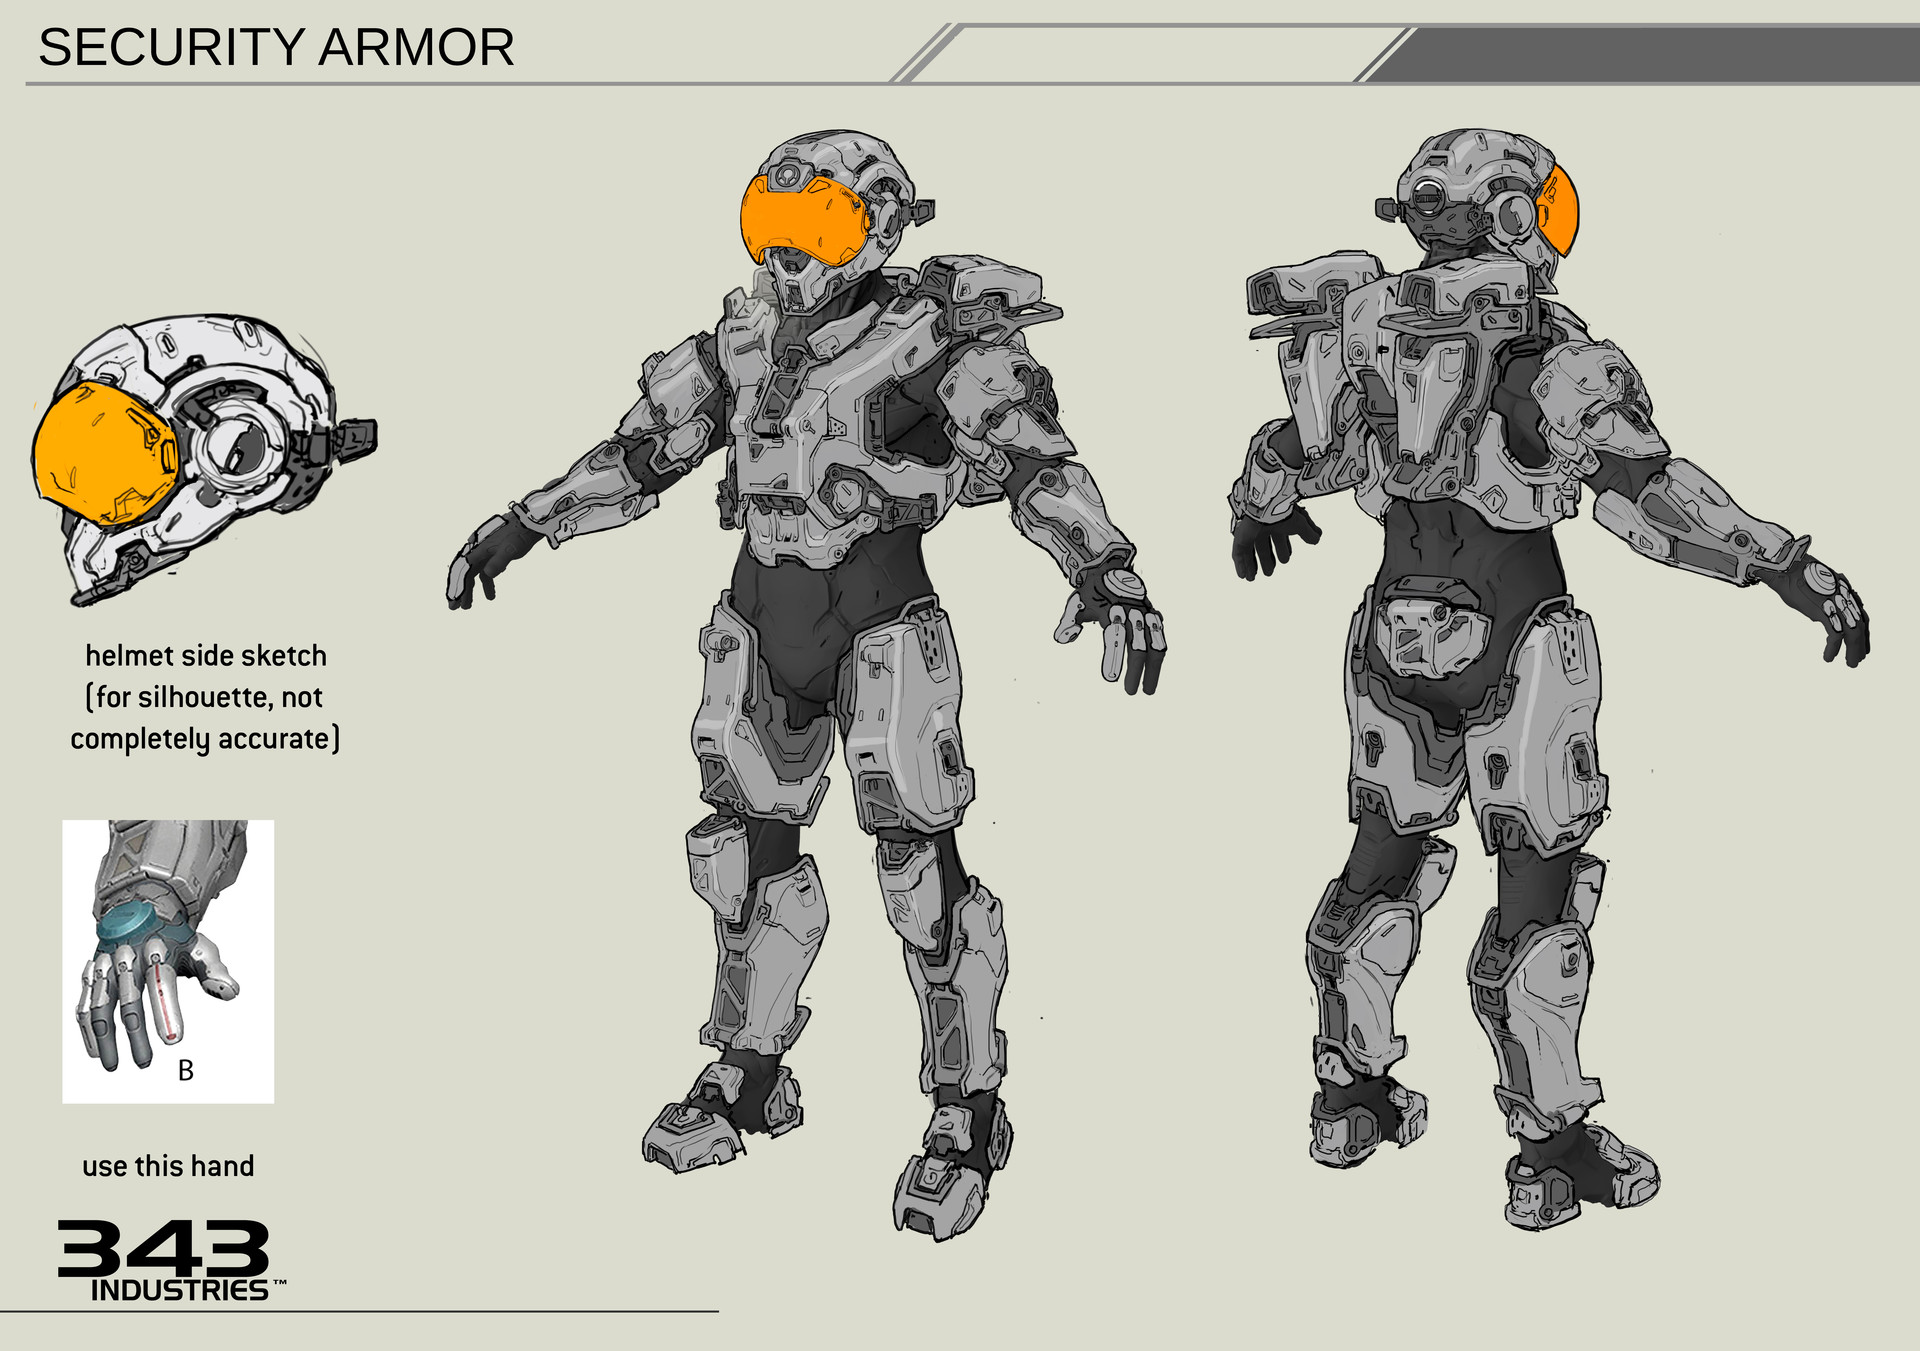 ArtStation - Halo 5 Security Armor, Kory Hubbell Borderlands Achievement